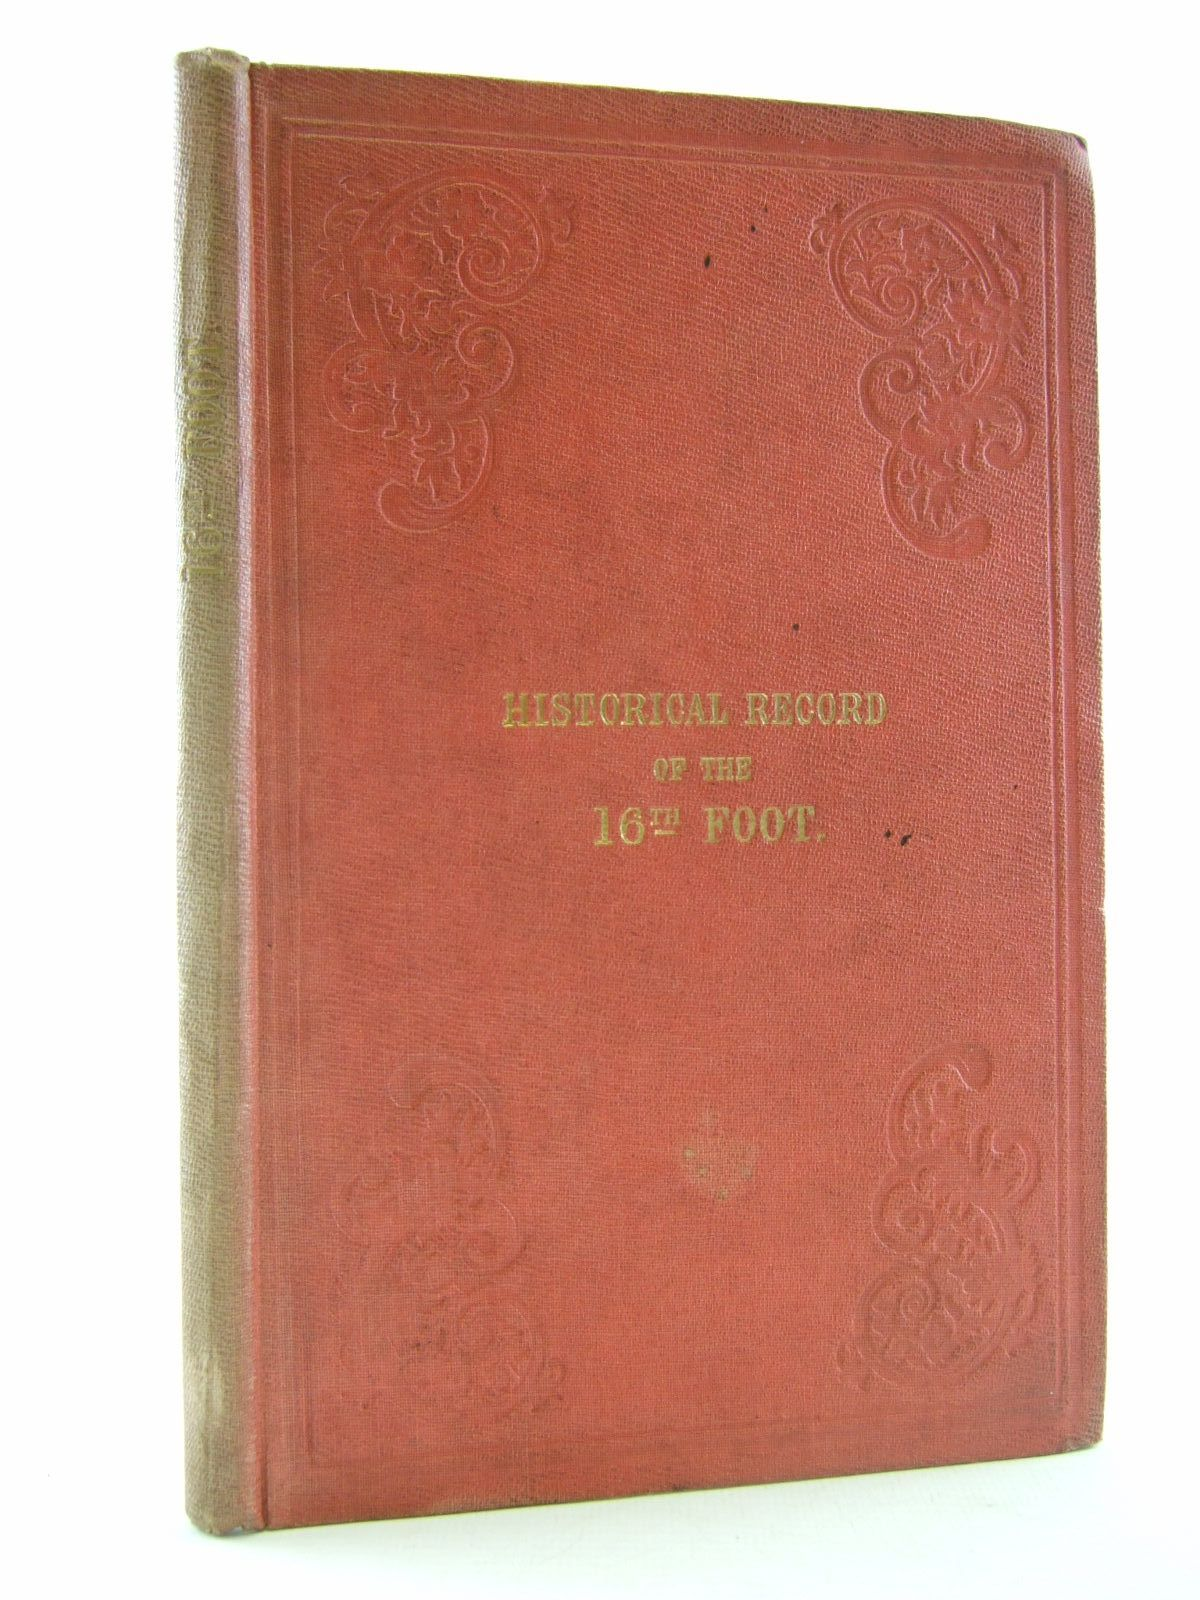 Photo of HISTORICAL RECORD OF THE SIXTEENTH, OR THE BEDORDSHIRE REGIMENT OF FOOT written by Cannon, Richard published by Parker, Furnivall & Parker (STOCK CODE: 2109176)  for sale by Stella & Rose's Books